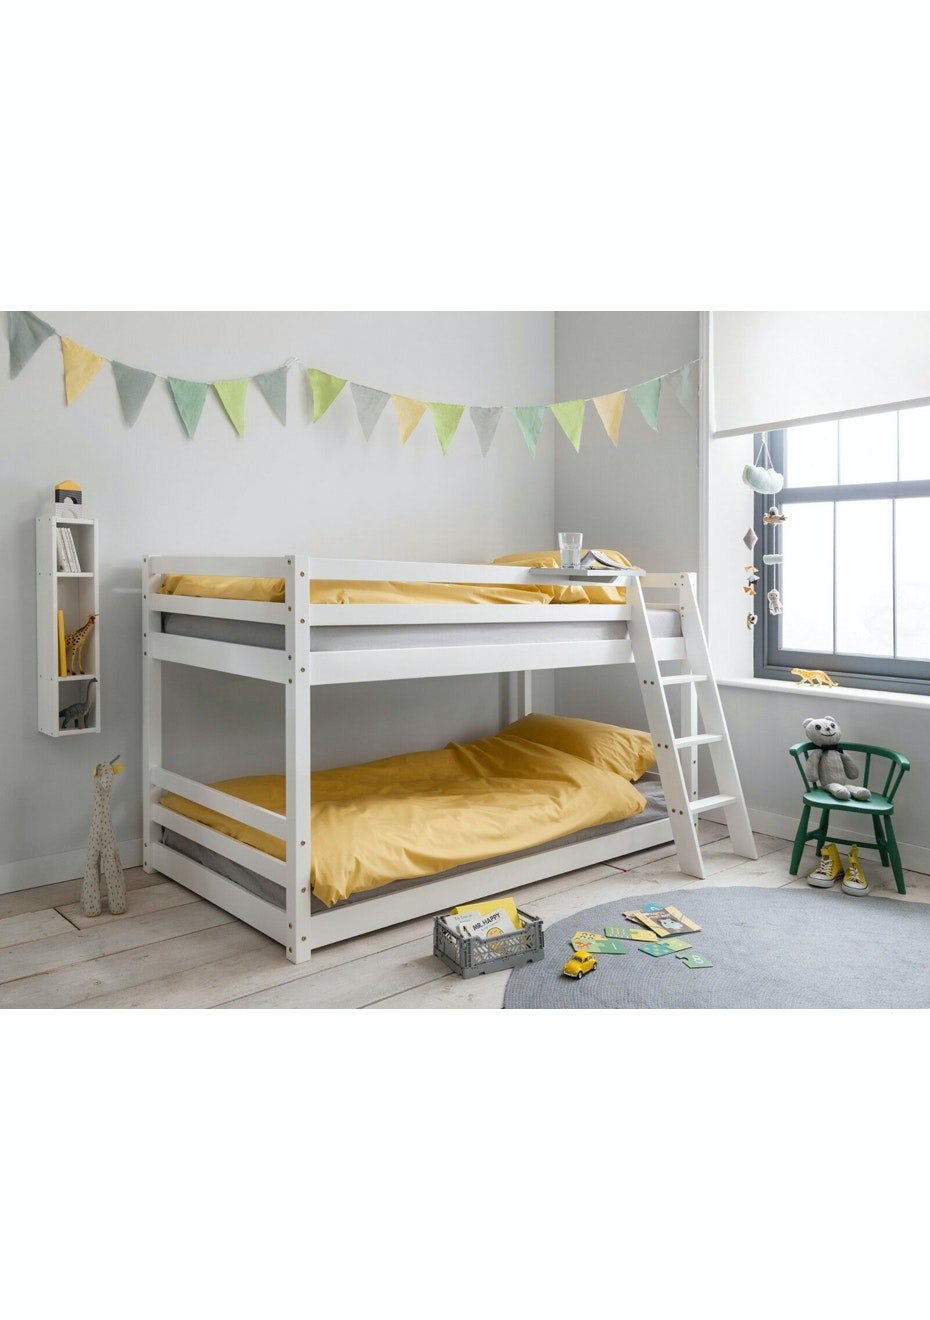 Picture of: Mid Sleeper Bunk Bed White Affordable Bedroom Makeover Onceit